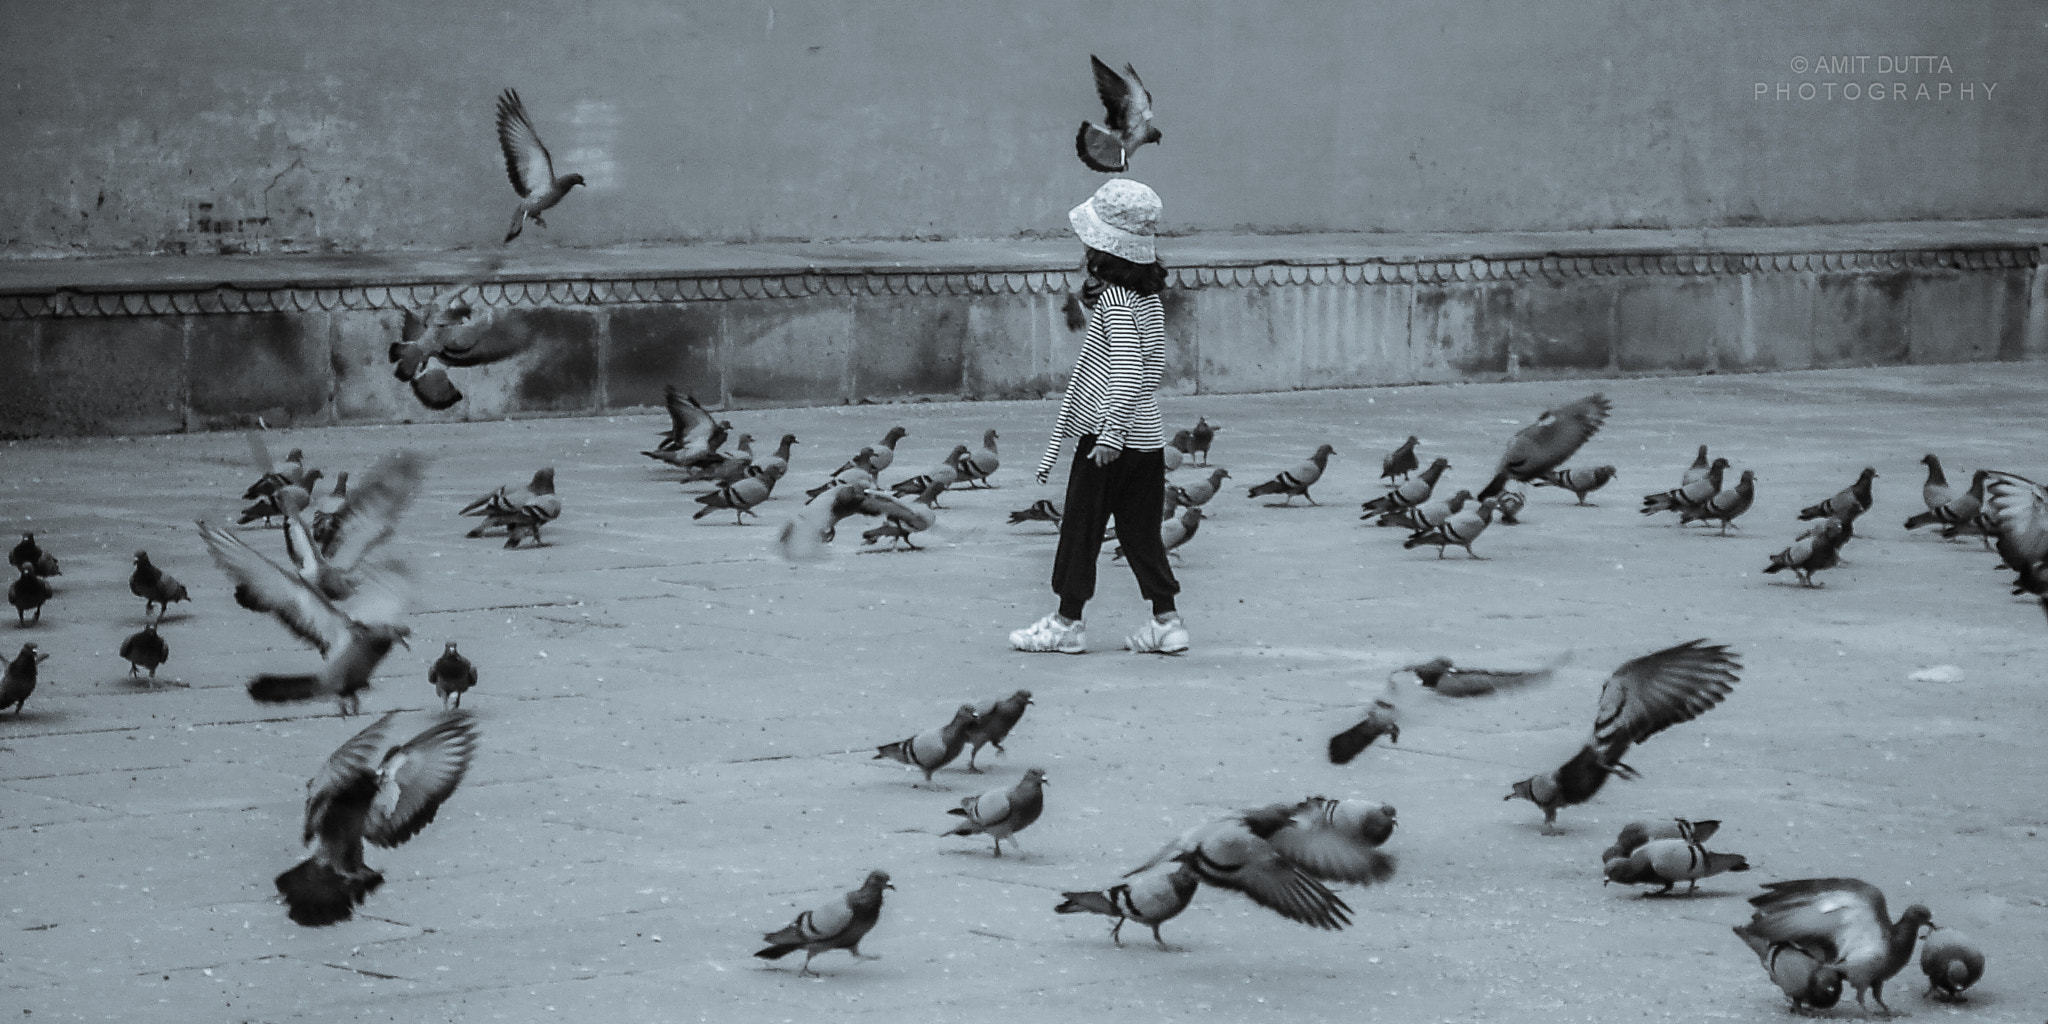 Photograph Among the birds by Amit Dutta on 500px